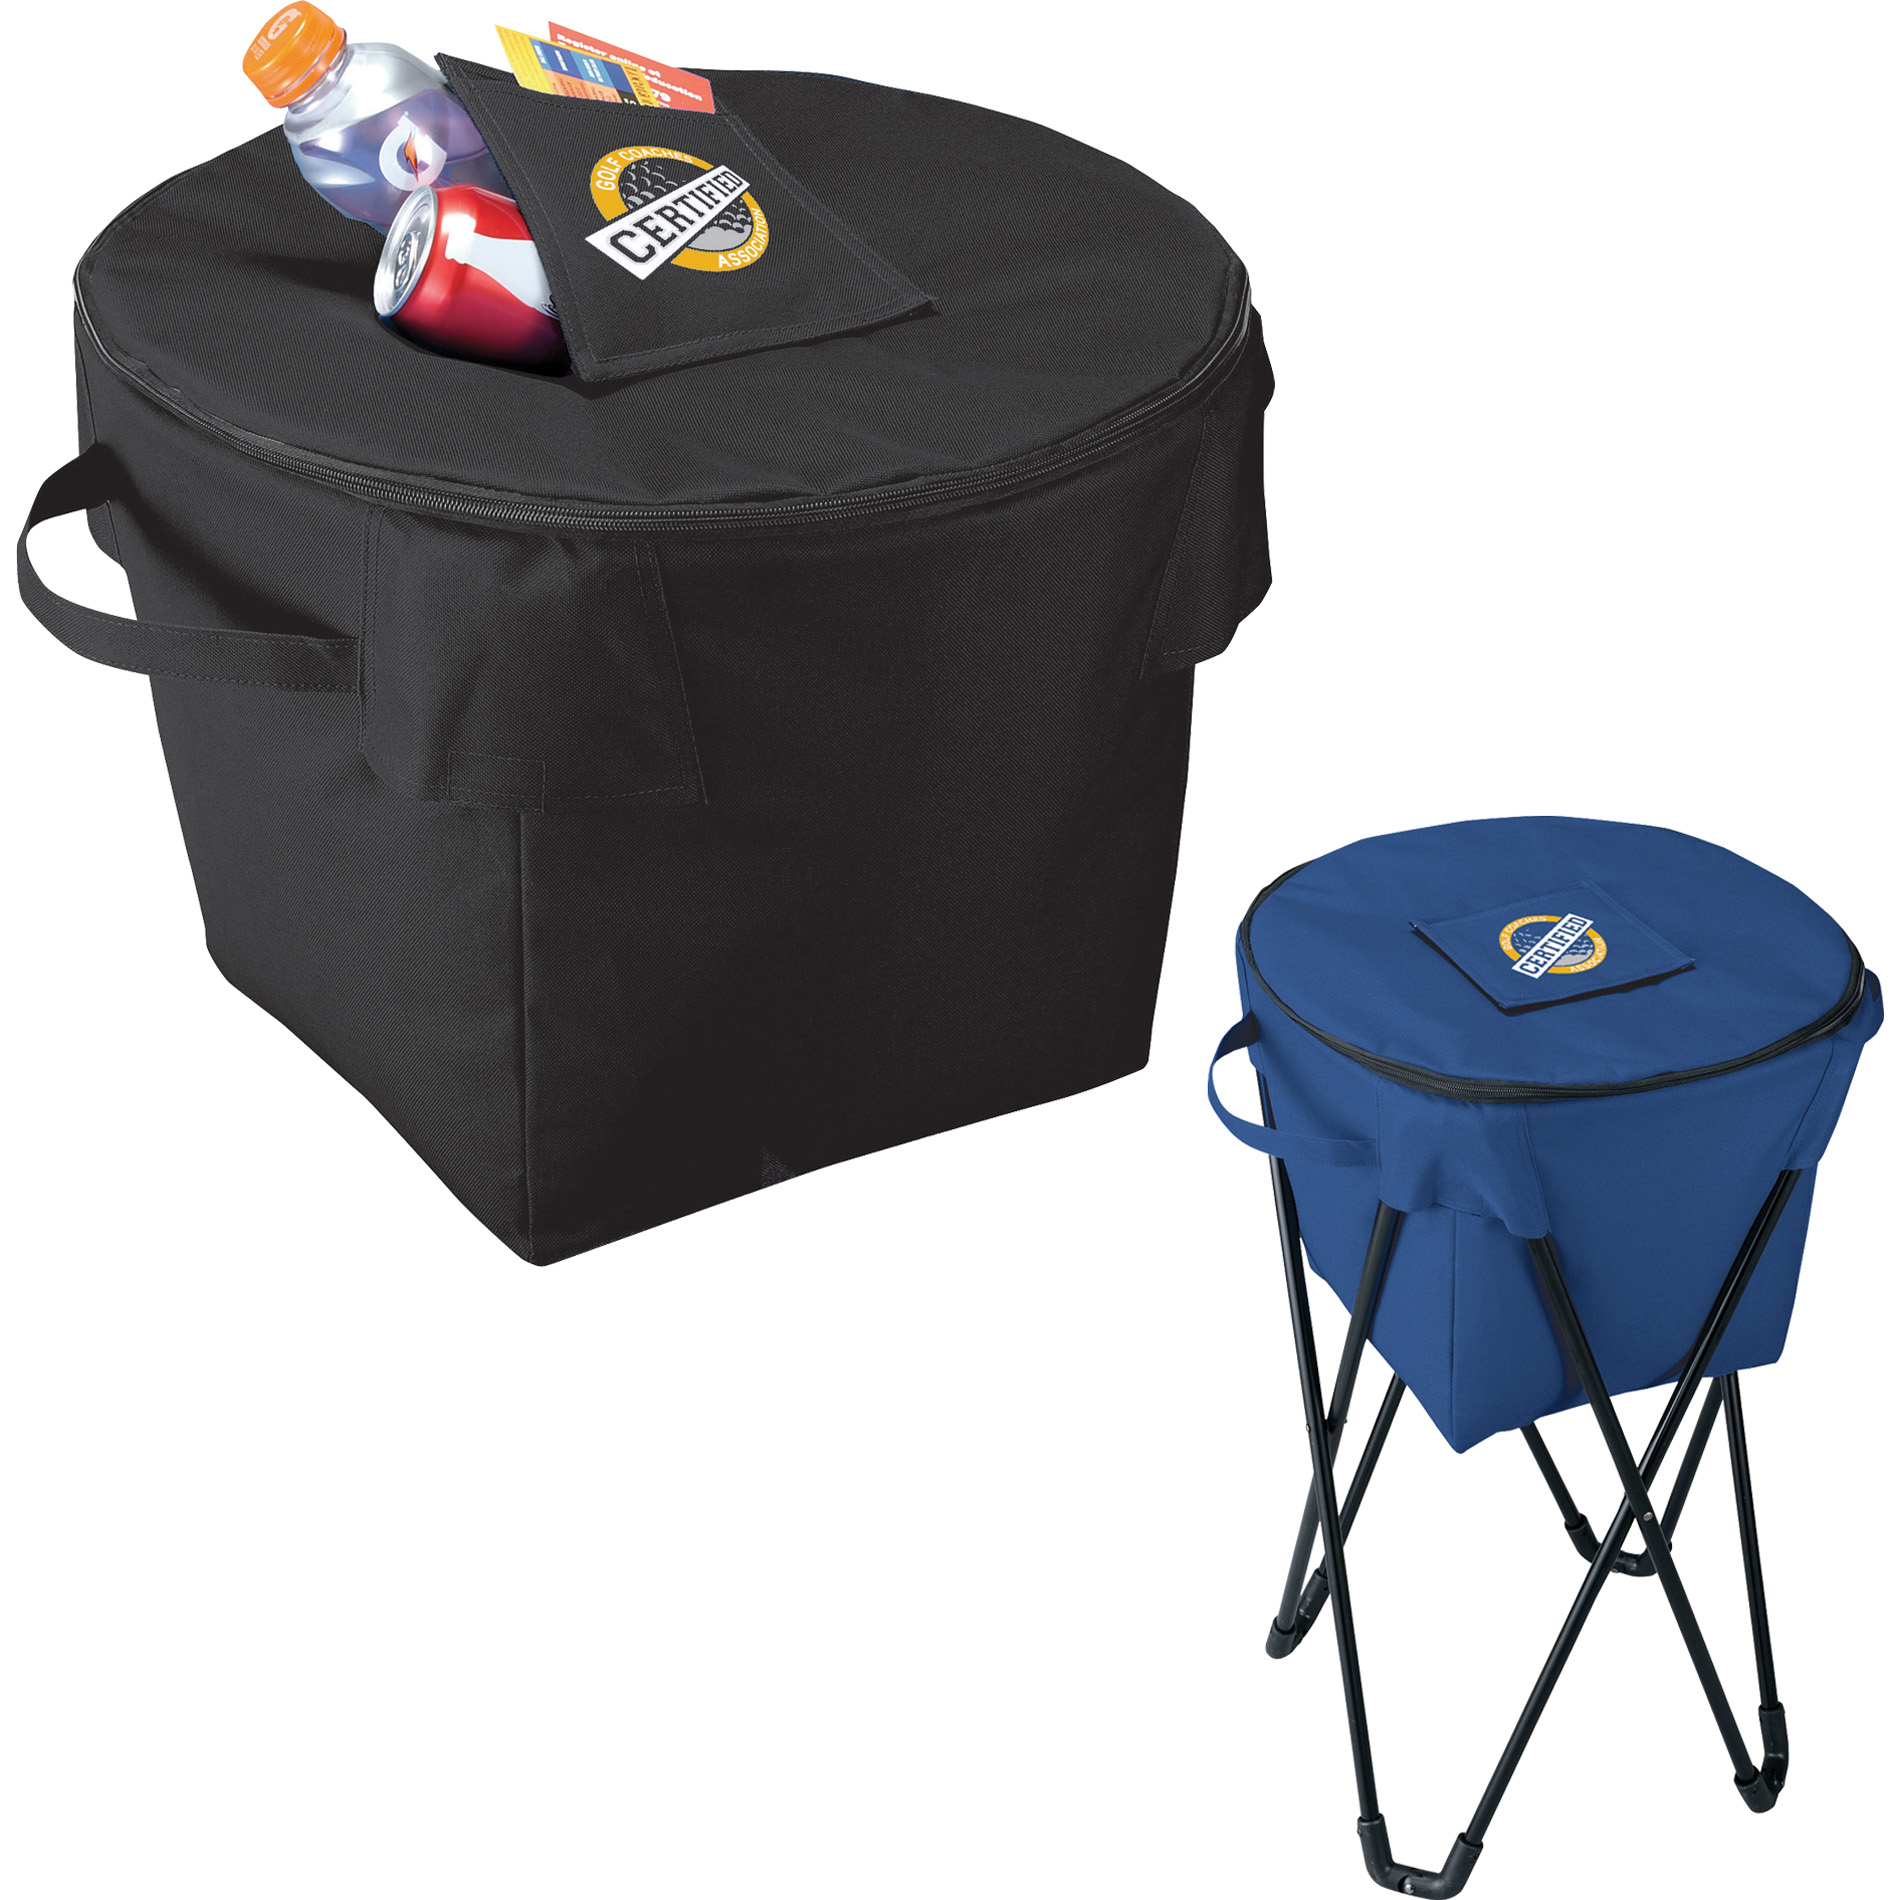 Game coolers portable - This Cooler Is Ideal For Barbecues Tailgates And Other Sporting And Outdoor Events Unique Design Of This Portable Cooler Tub Makes This A Great Choice